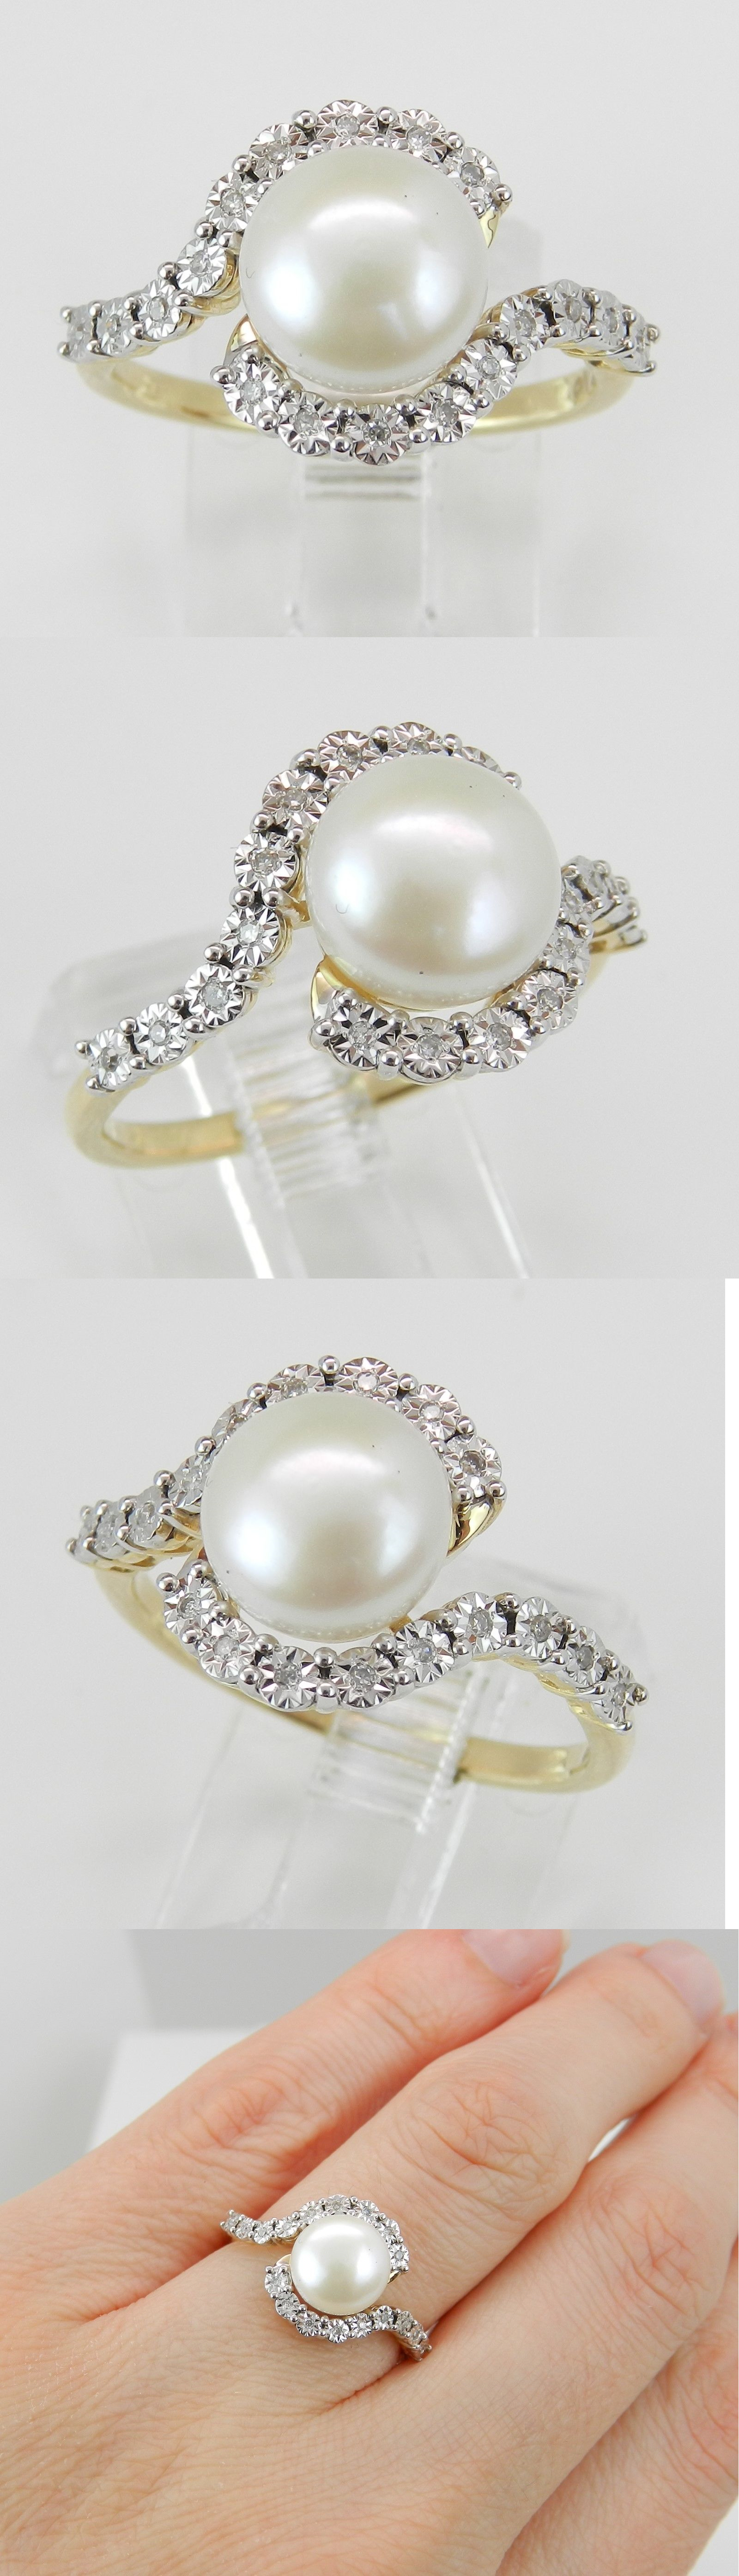 Pearl 11021: 14K Yellow Gold Diamond And Pearl Bypass Engagement Ring Size 7 -> BUY IT NOW ONLY: $298 on eBay!